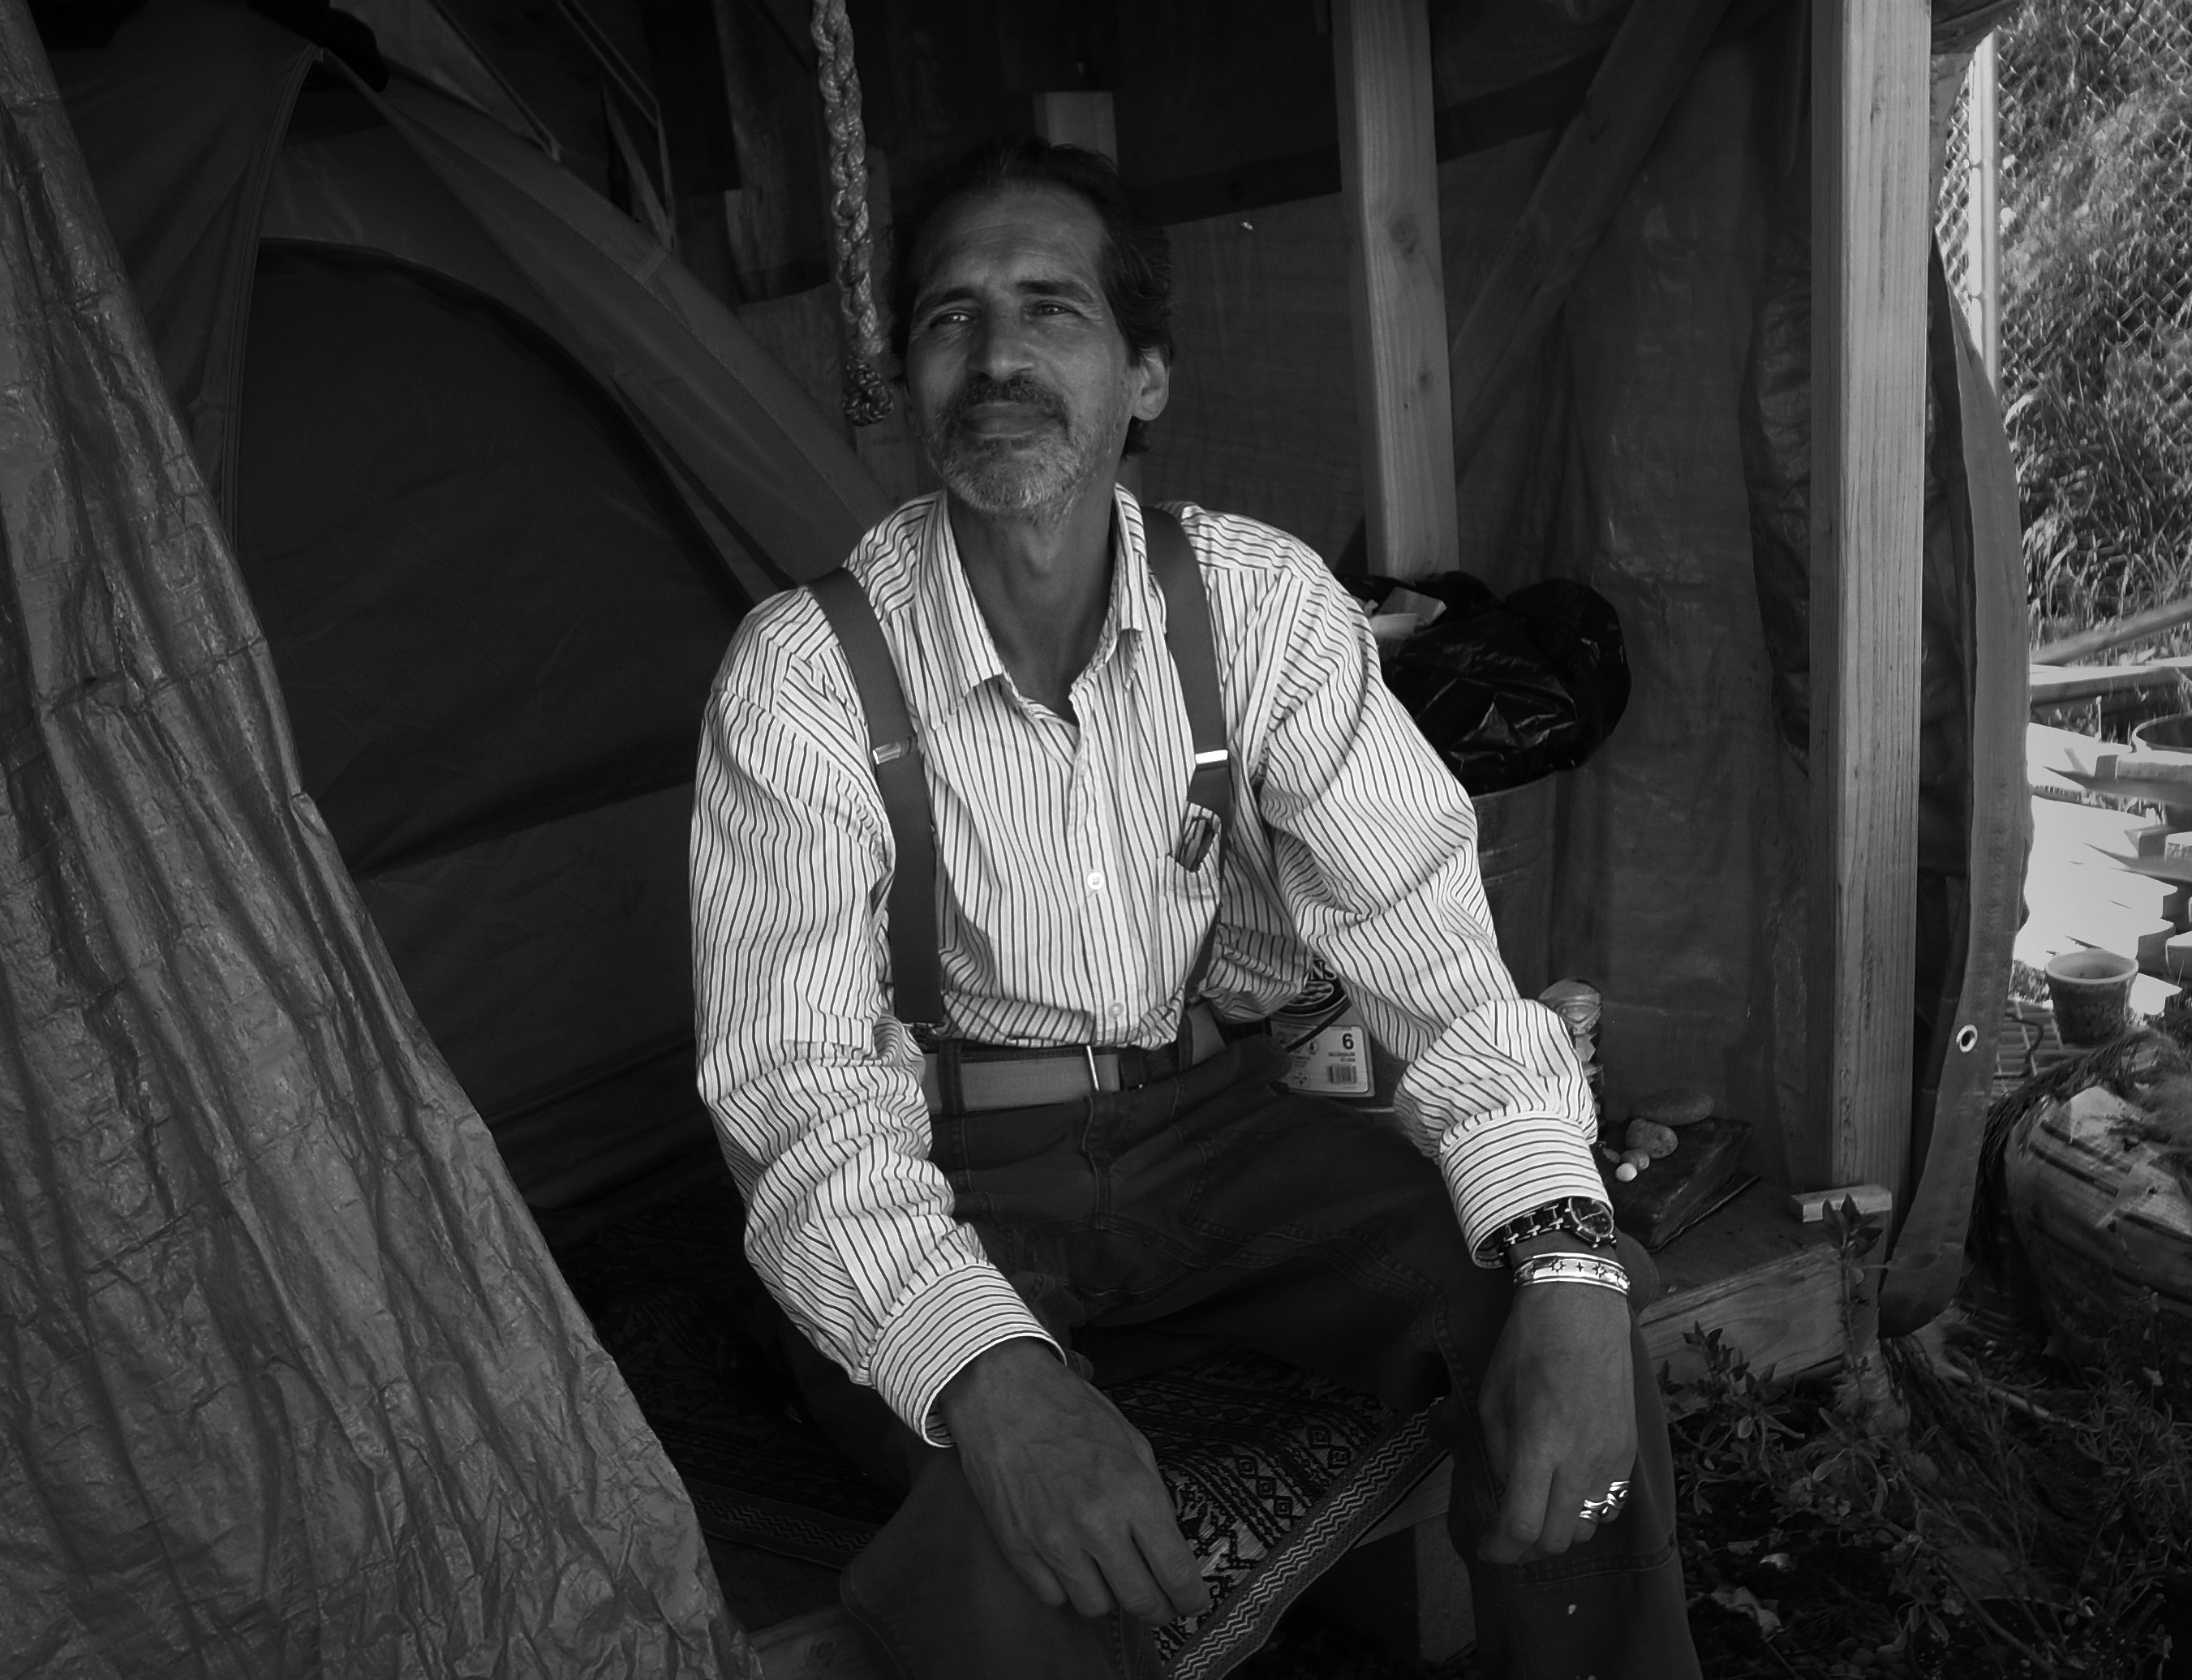 A man in suspenders sits at a tent entrance